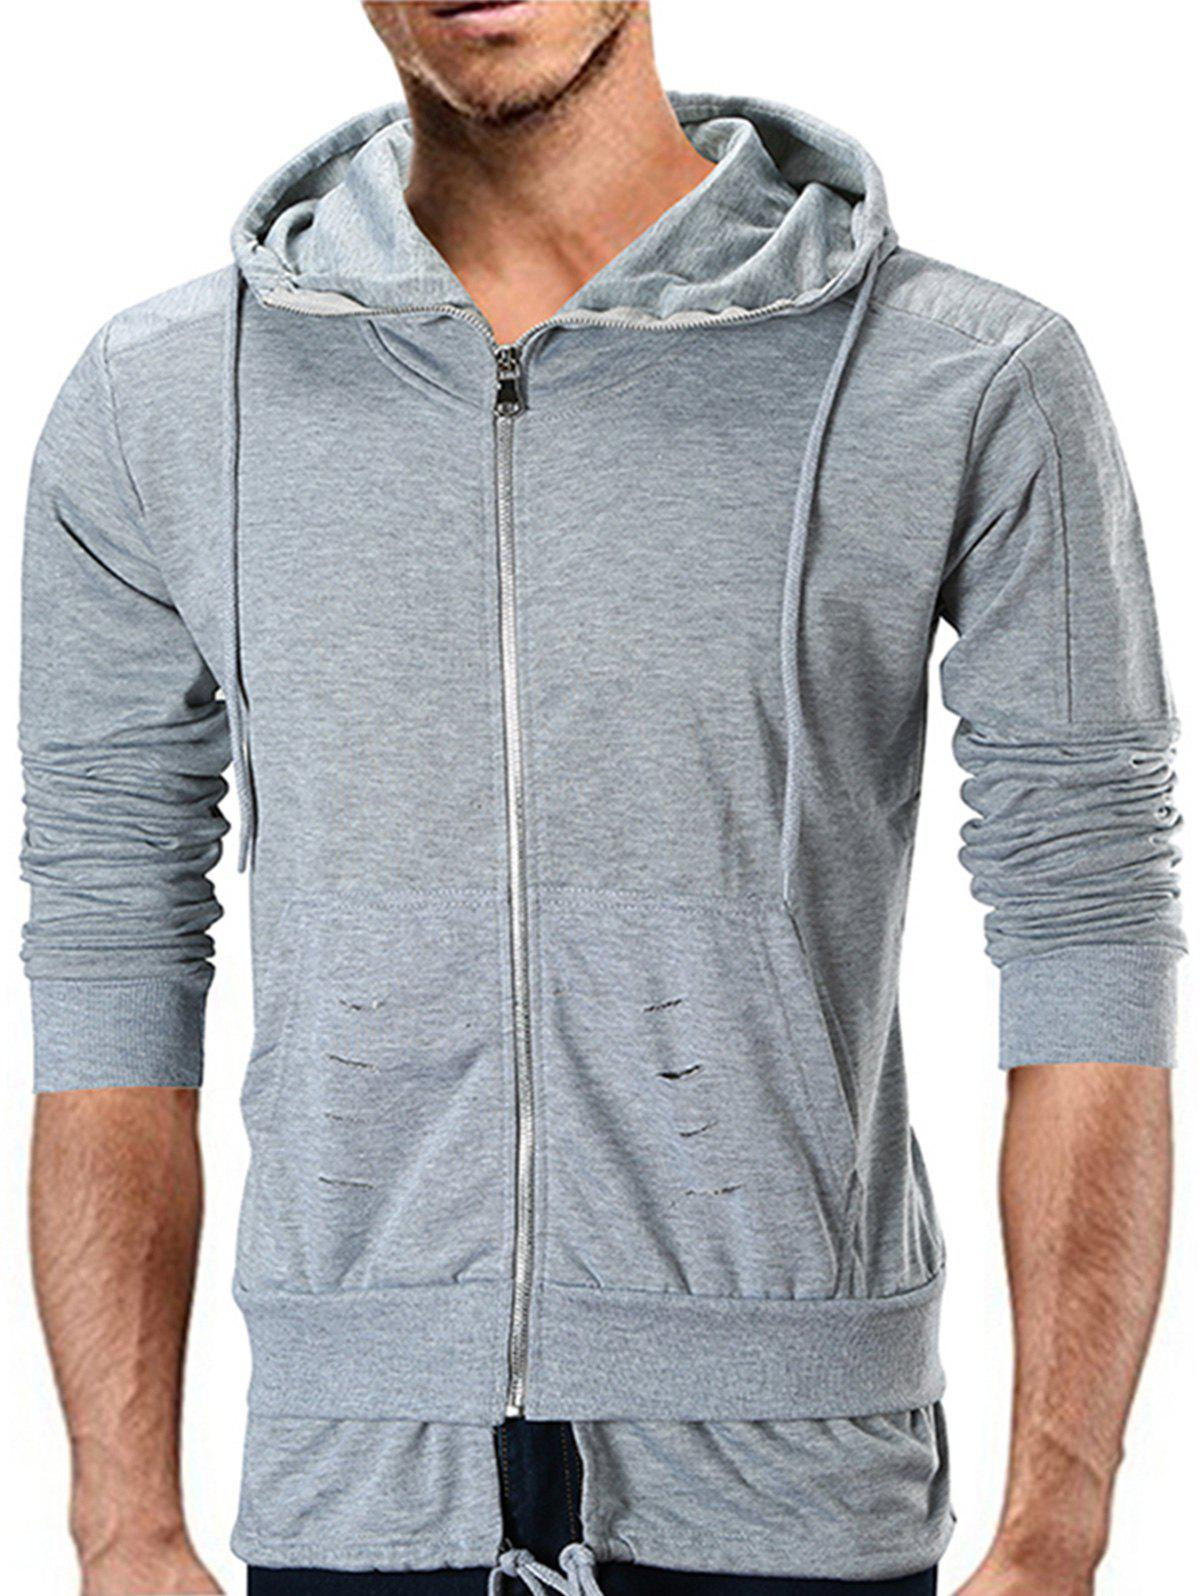 Distressed Detail Layered Hem Zip Up Hoodie - GRAY XL